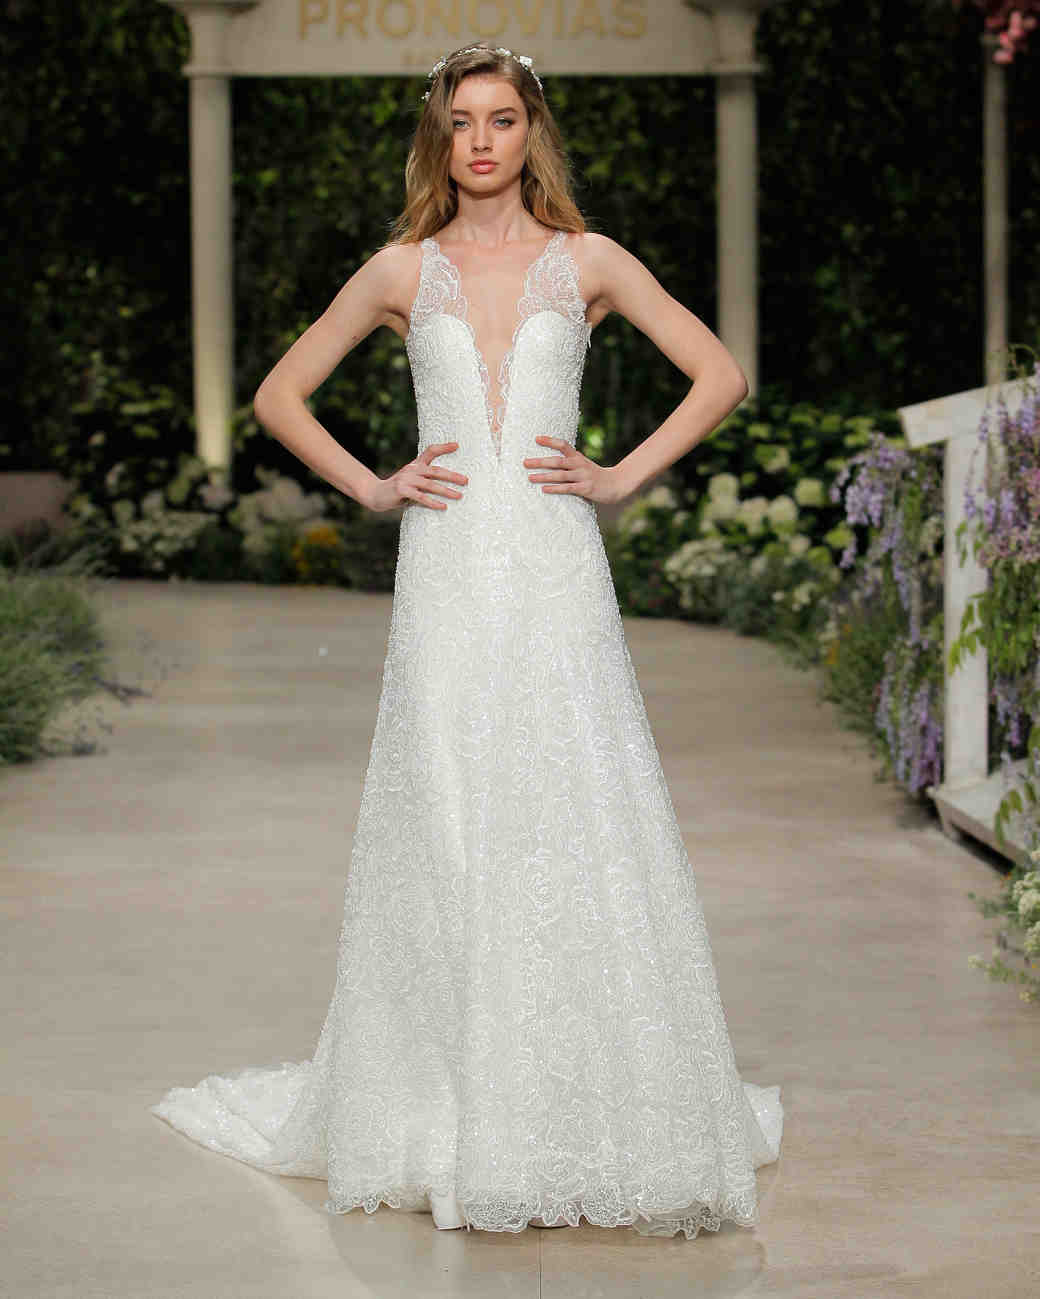 pronovias wedding dress spring 2019 v-neck embroidered